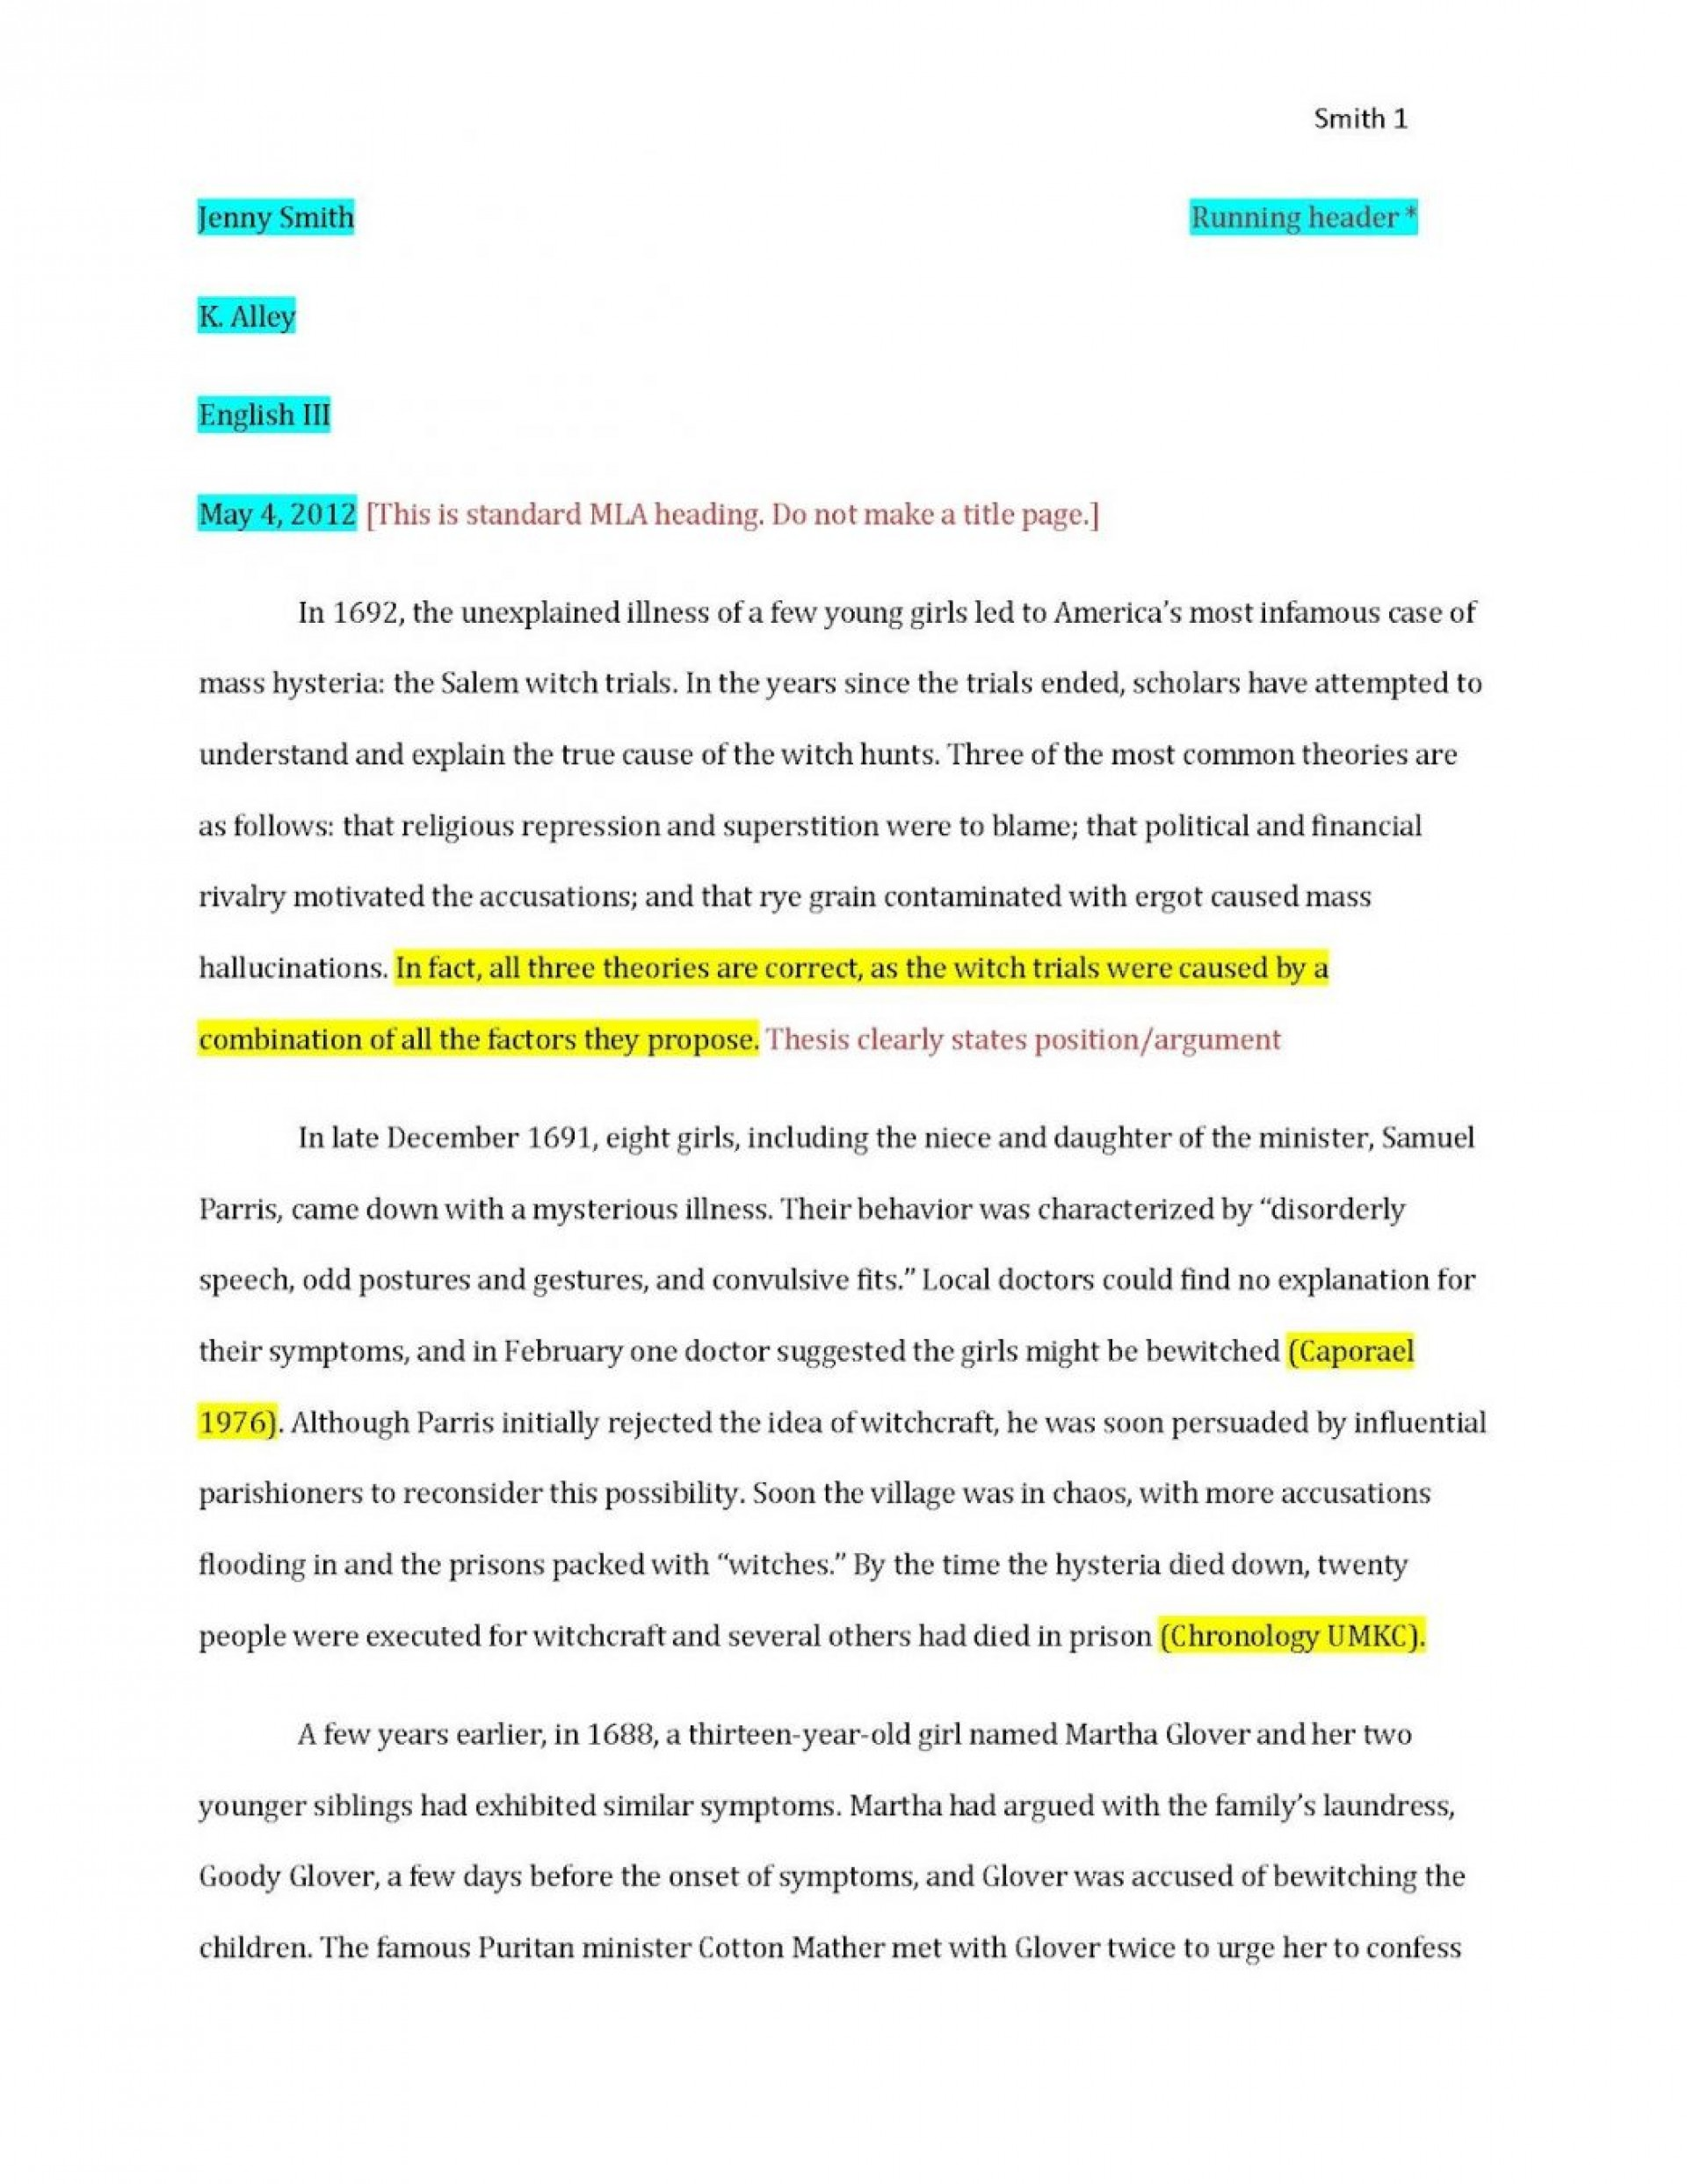 002 Mla Format Essay Generator Author Date References System Ready Set Automaticpaper P 1048x1357 Wondrous Paper Software Download Title Reddit Free 1920